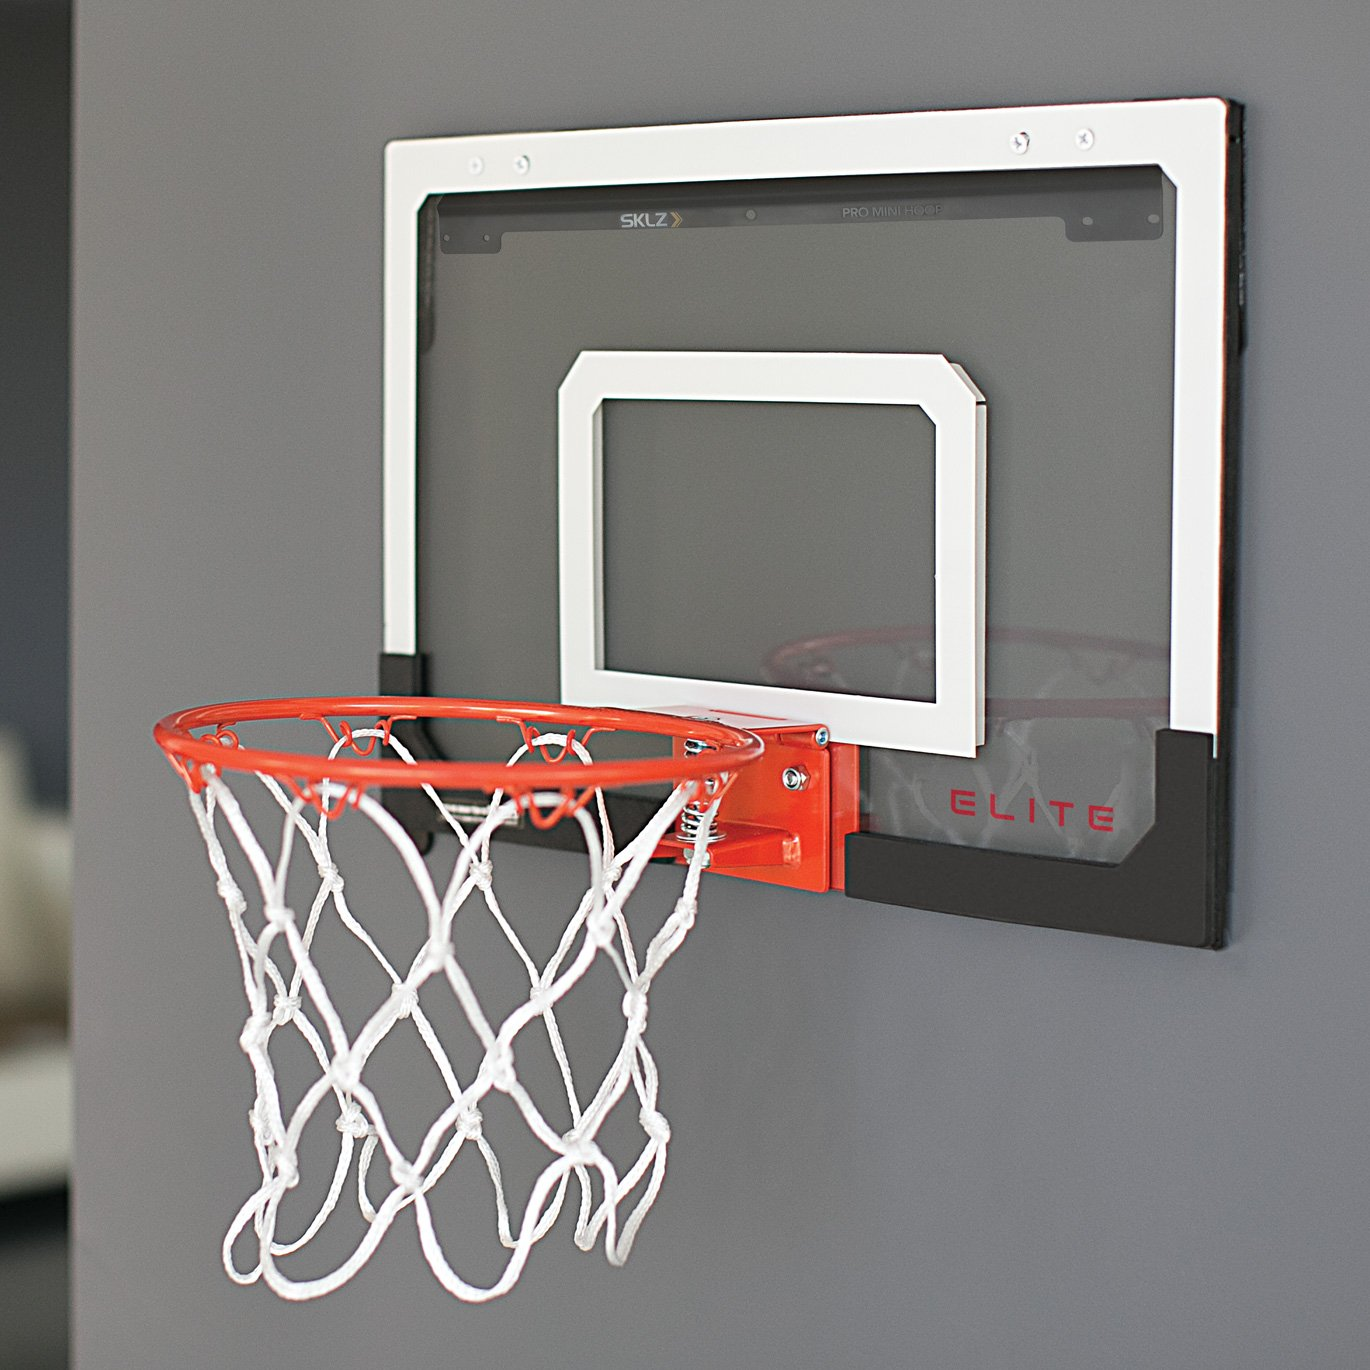 Stunning basketball net for bedroom pictures home design for Bedroom basketball hoop